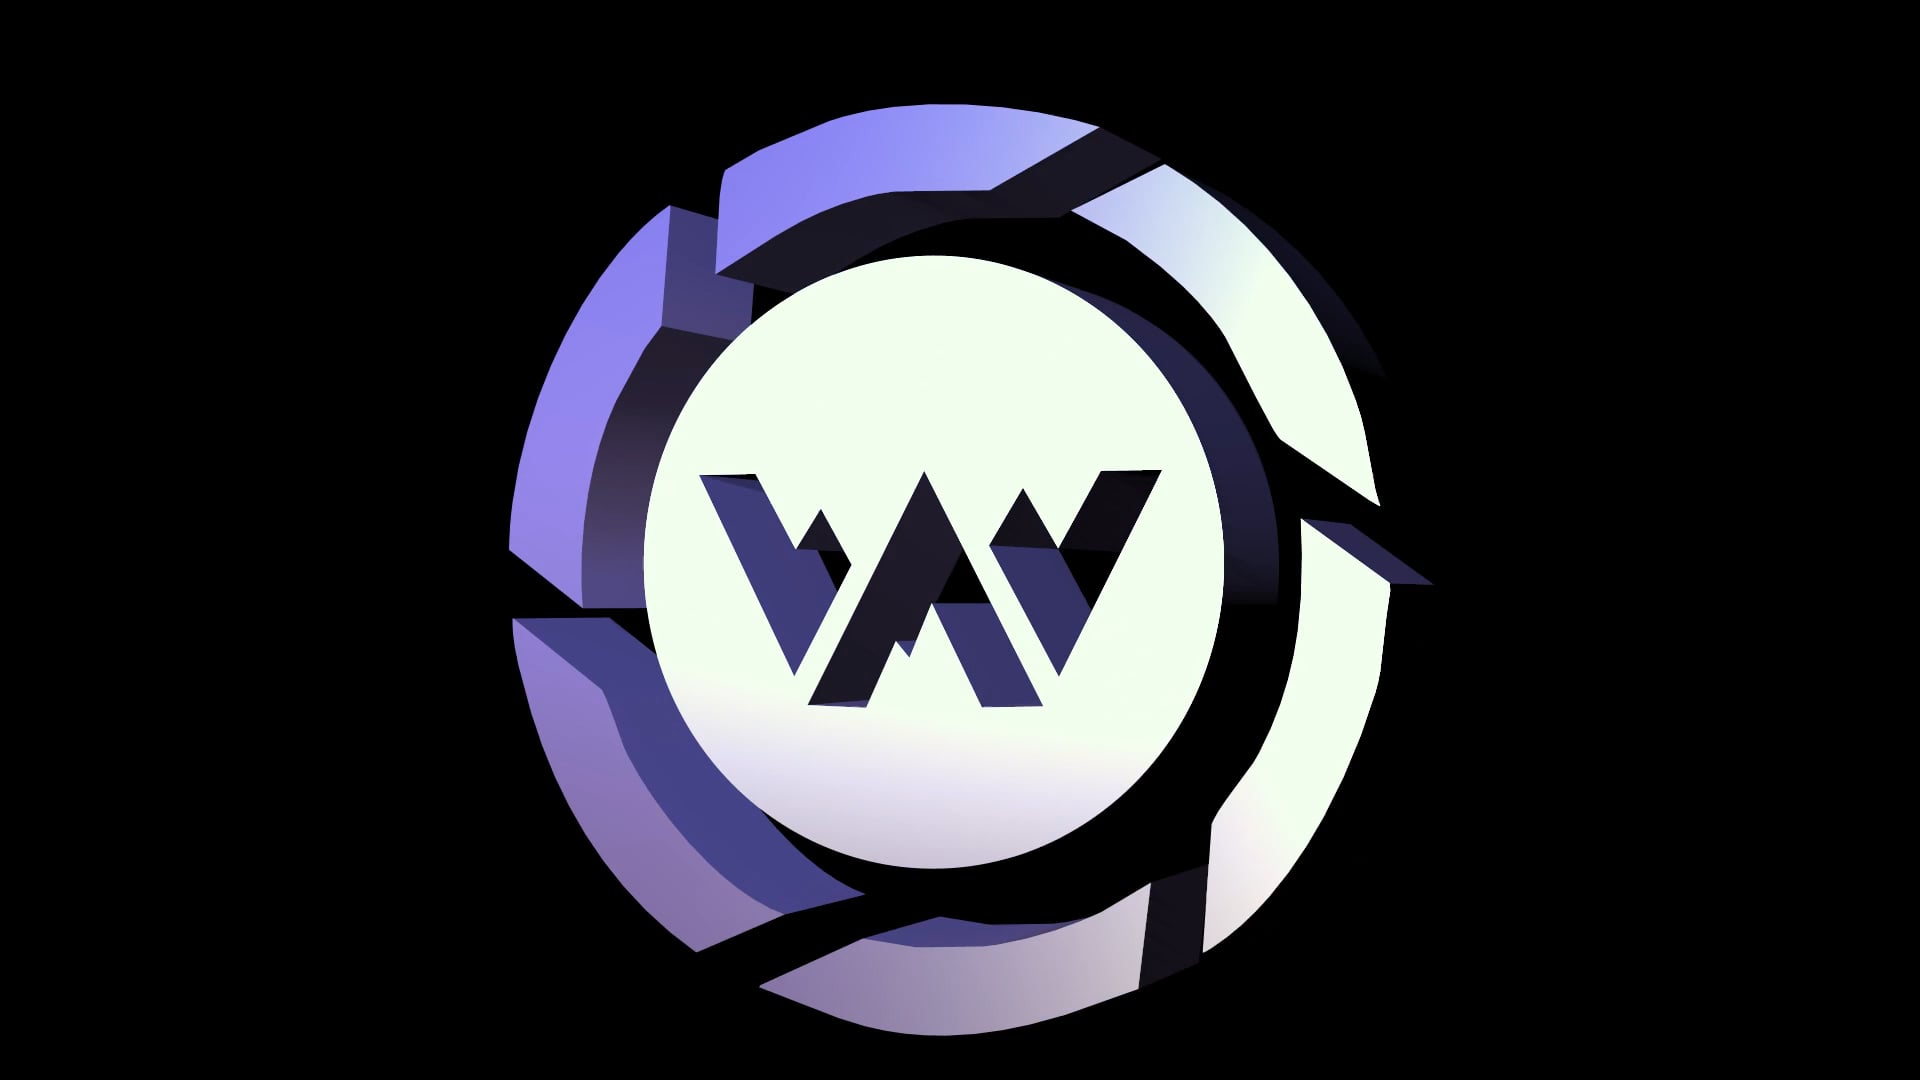 WIFMCO_Animated_Logo.mov